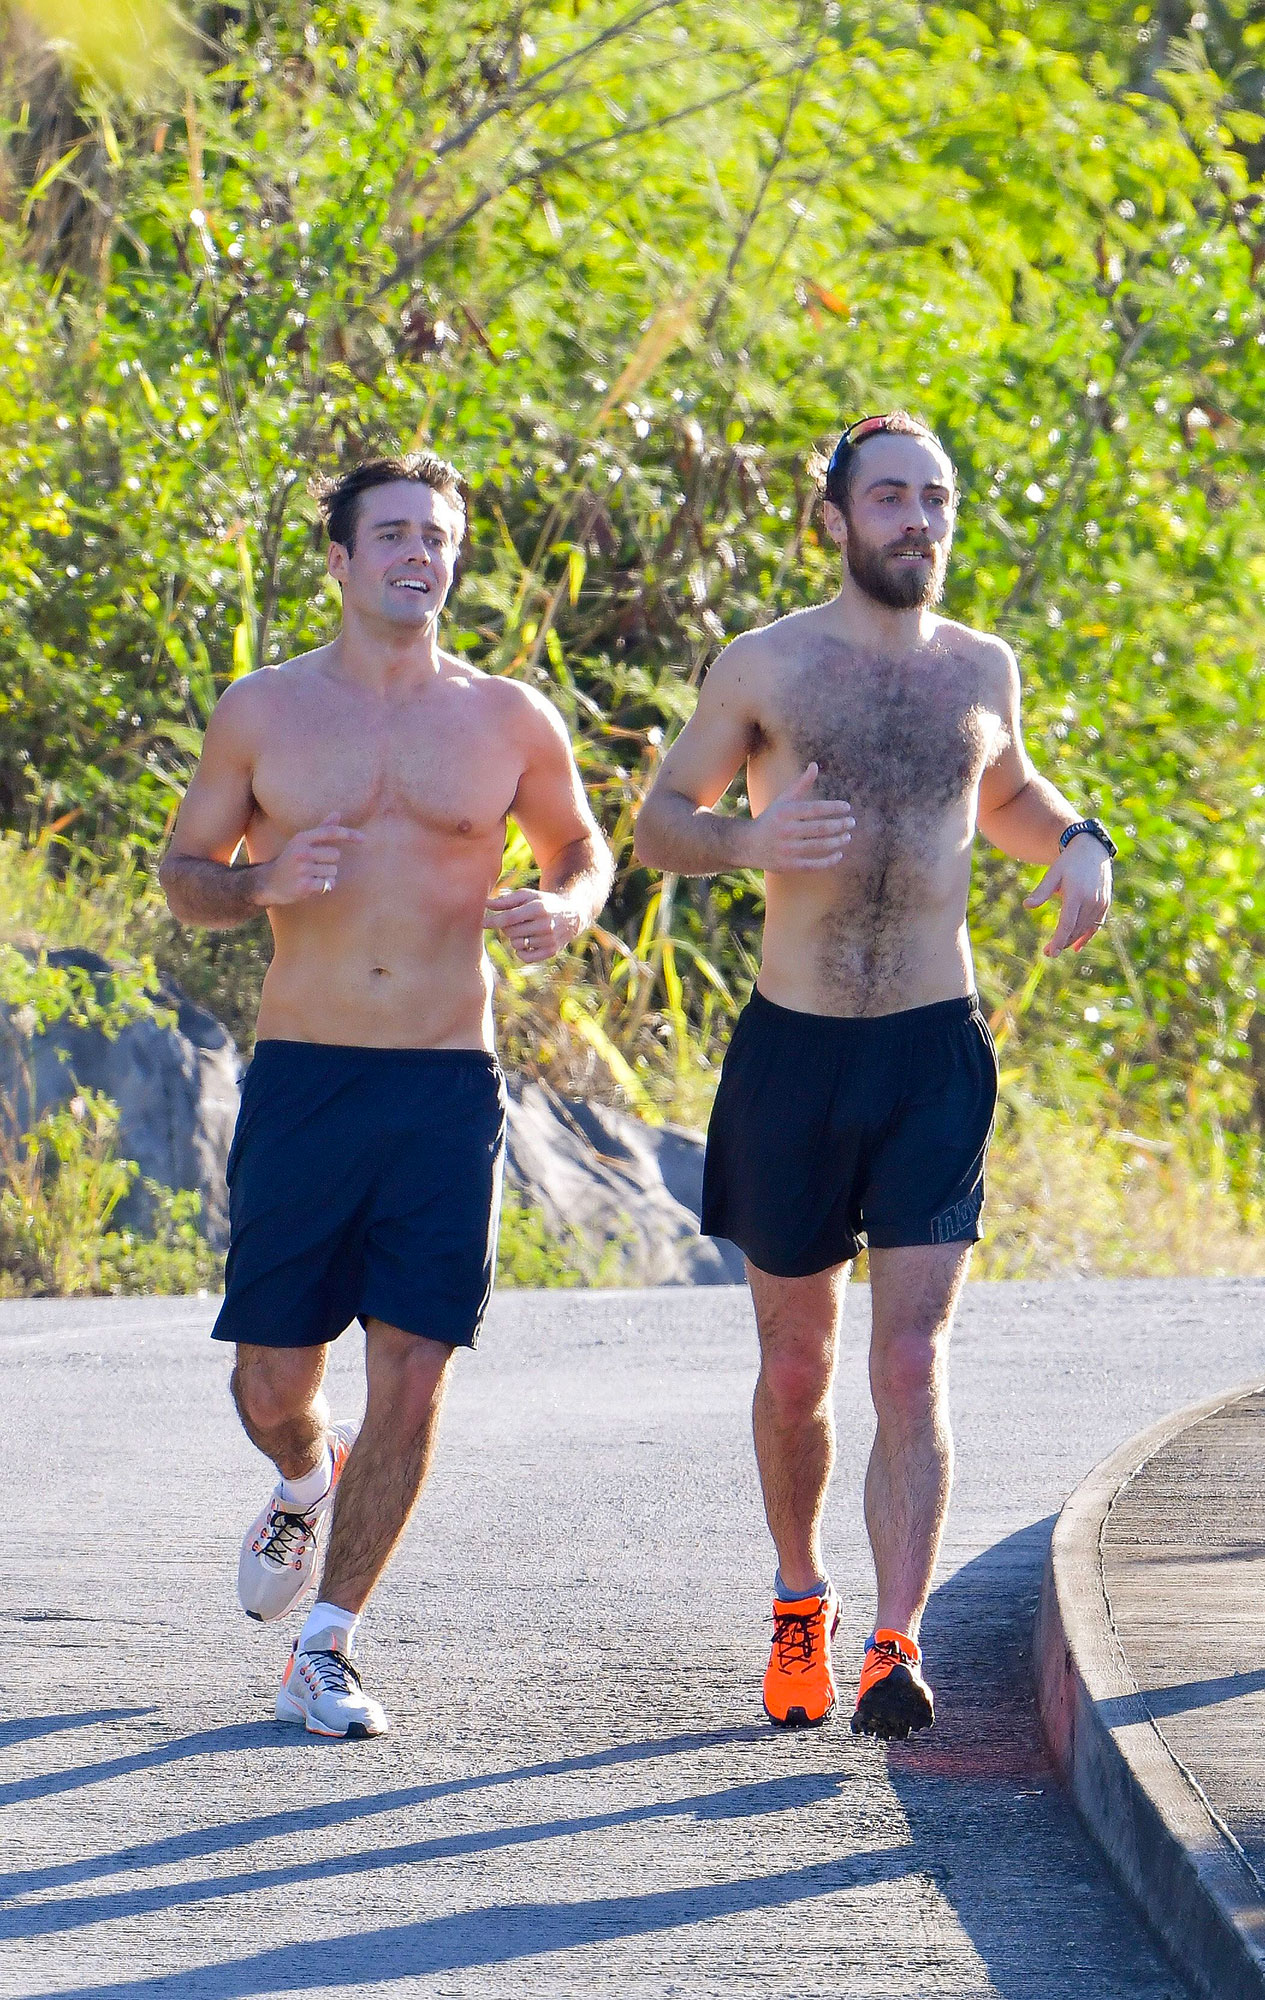 Spencer Matthews and James Middleton Celebrity Joggers - The brothers-in-law who jog together, stay together! The Made in Chelsea alum (left) and Pippa Middleton's younger brother worked out while on vacation in St. Barts on December 30, 2018.